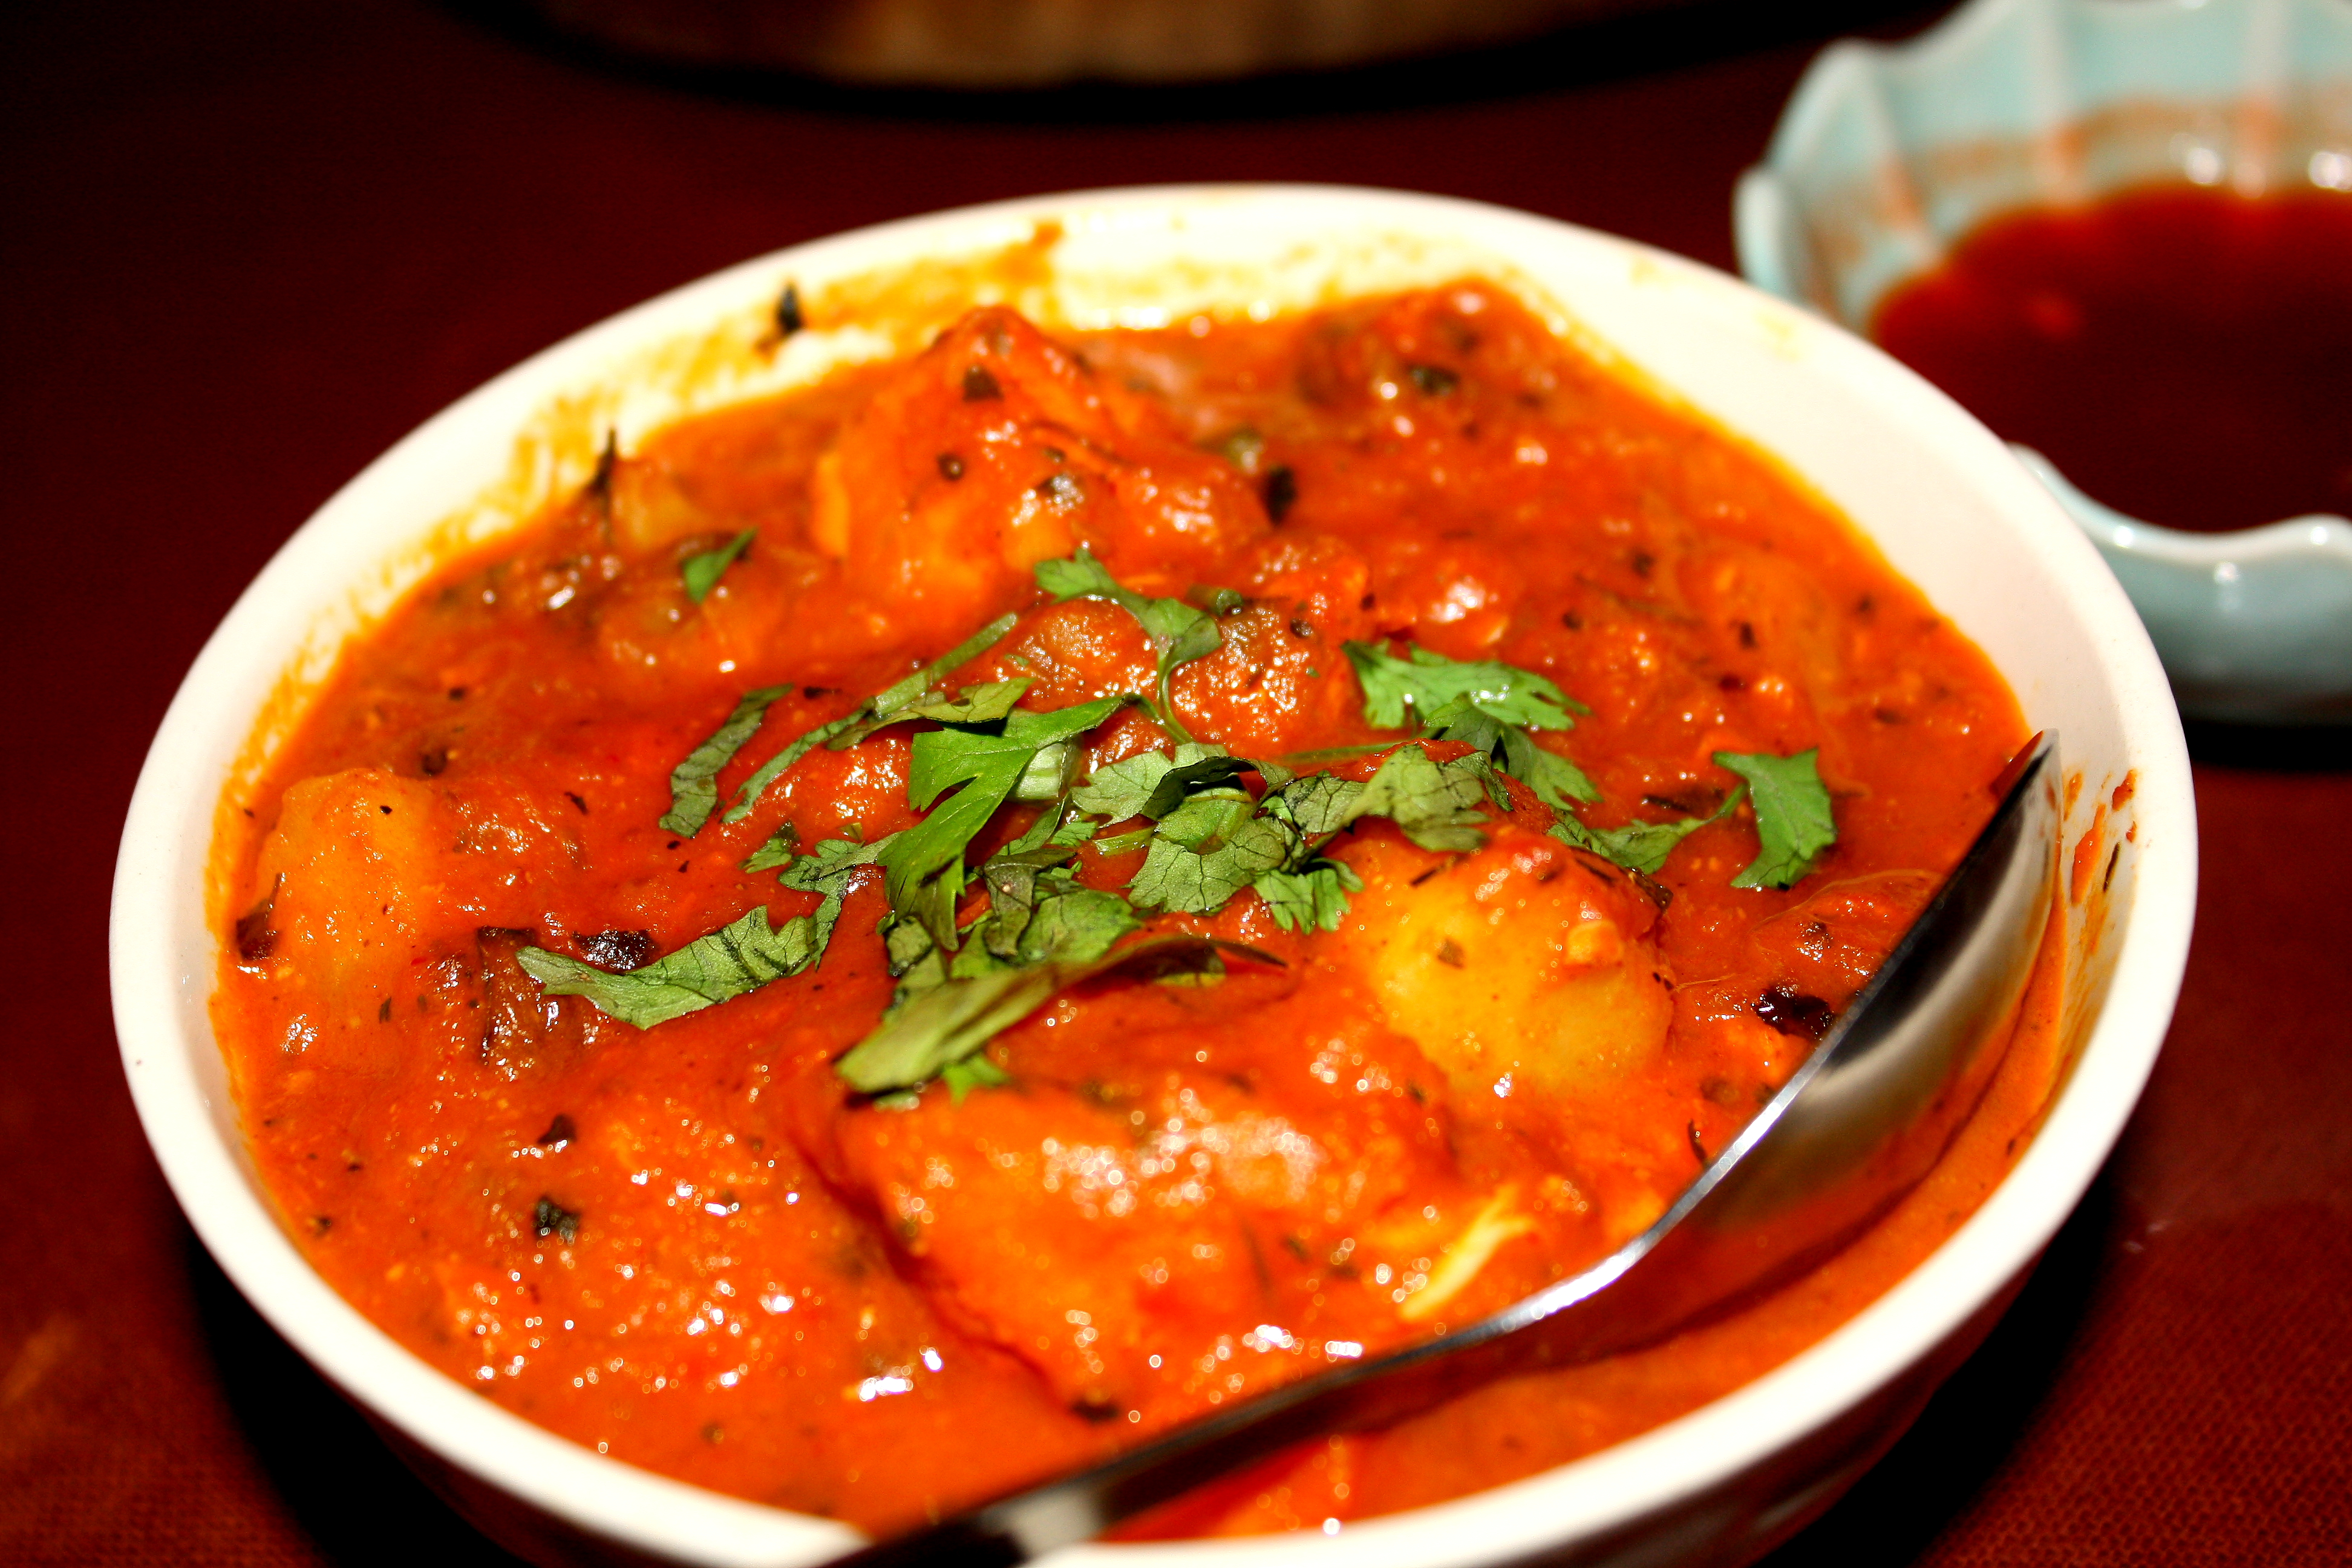 Cuisine Spicy Indian Food Travelspoon